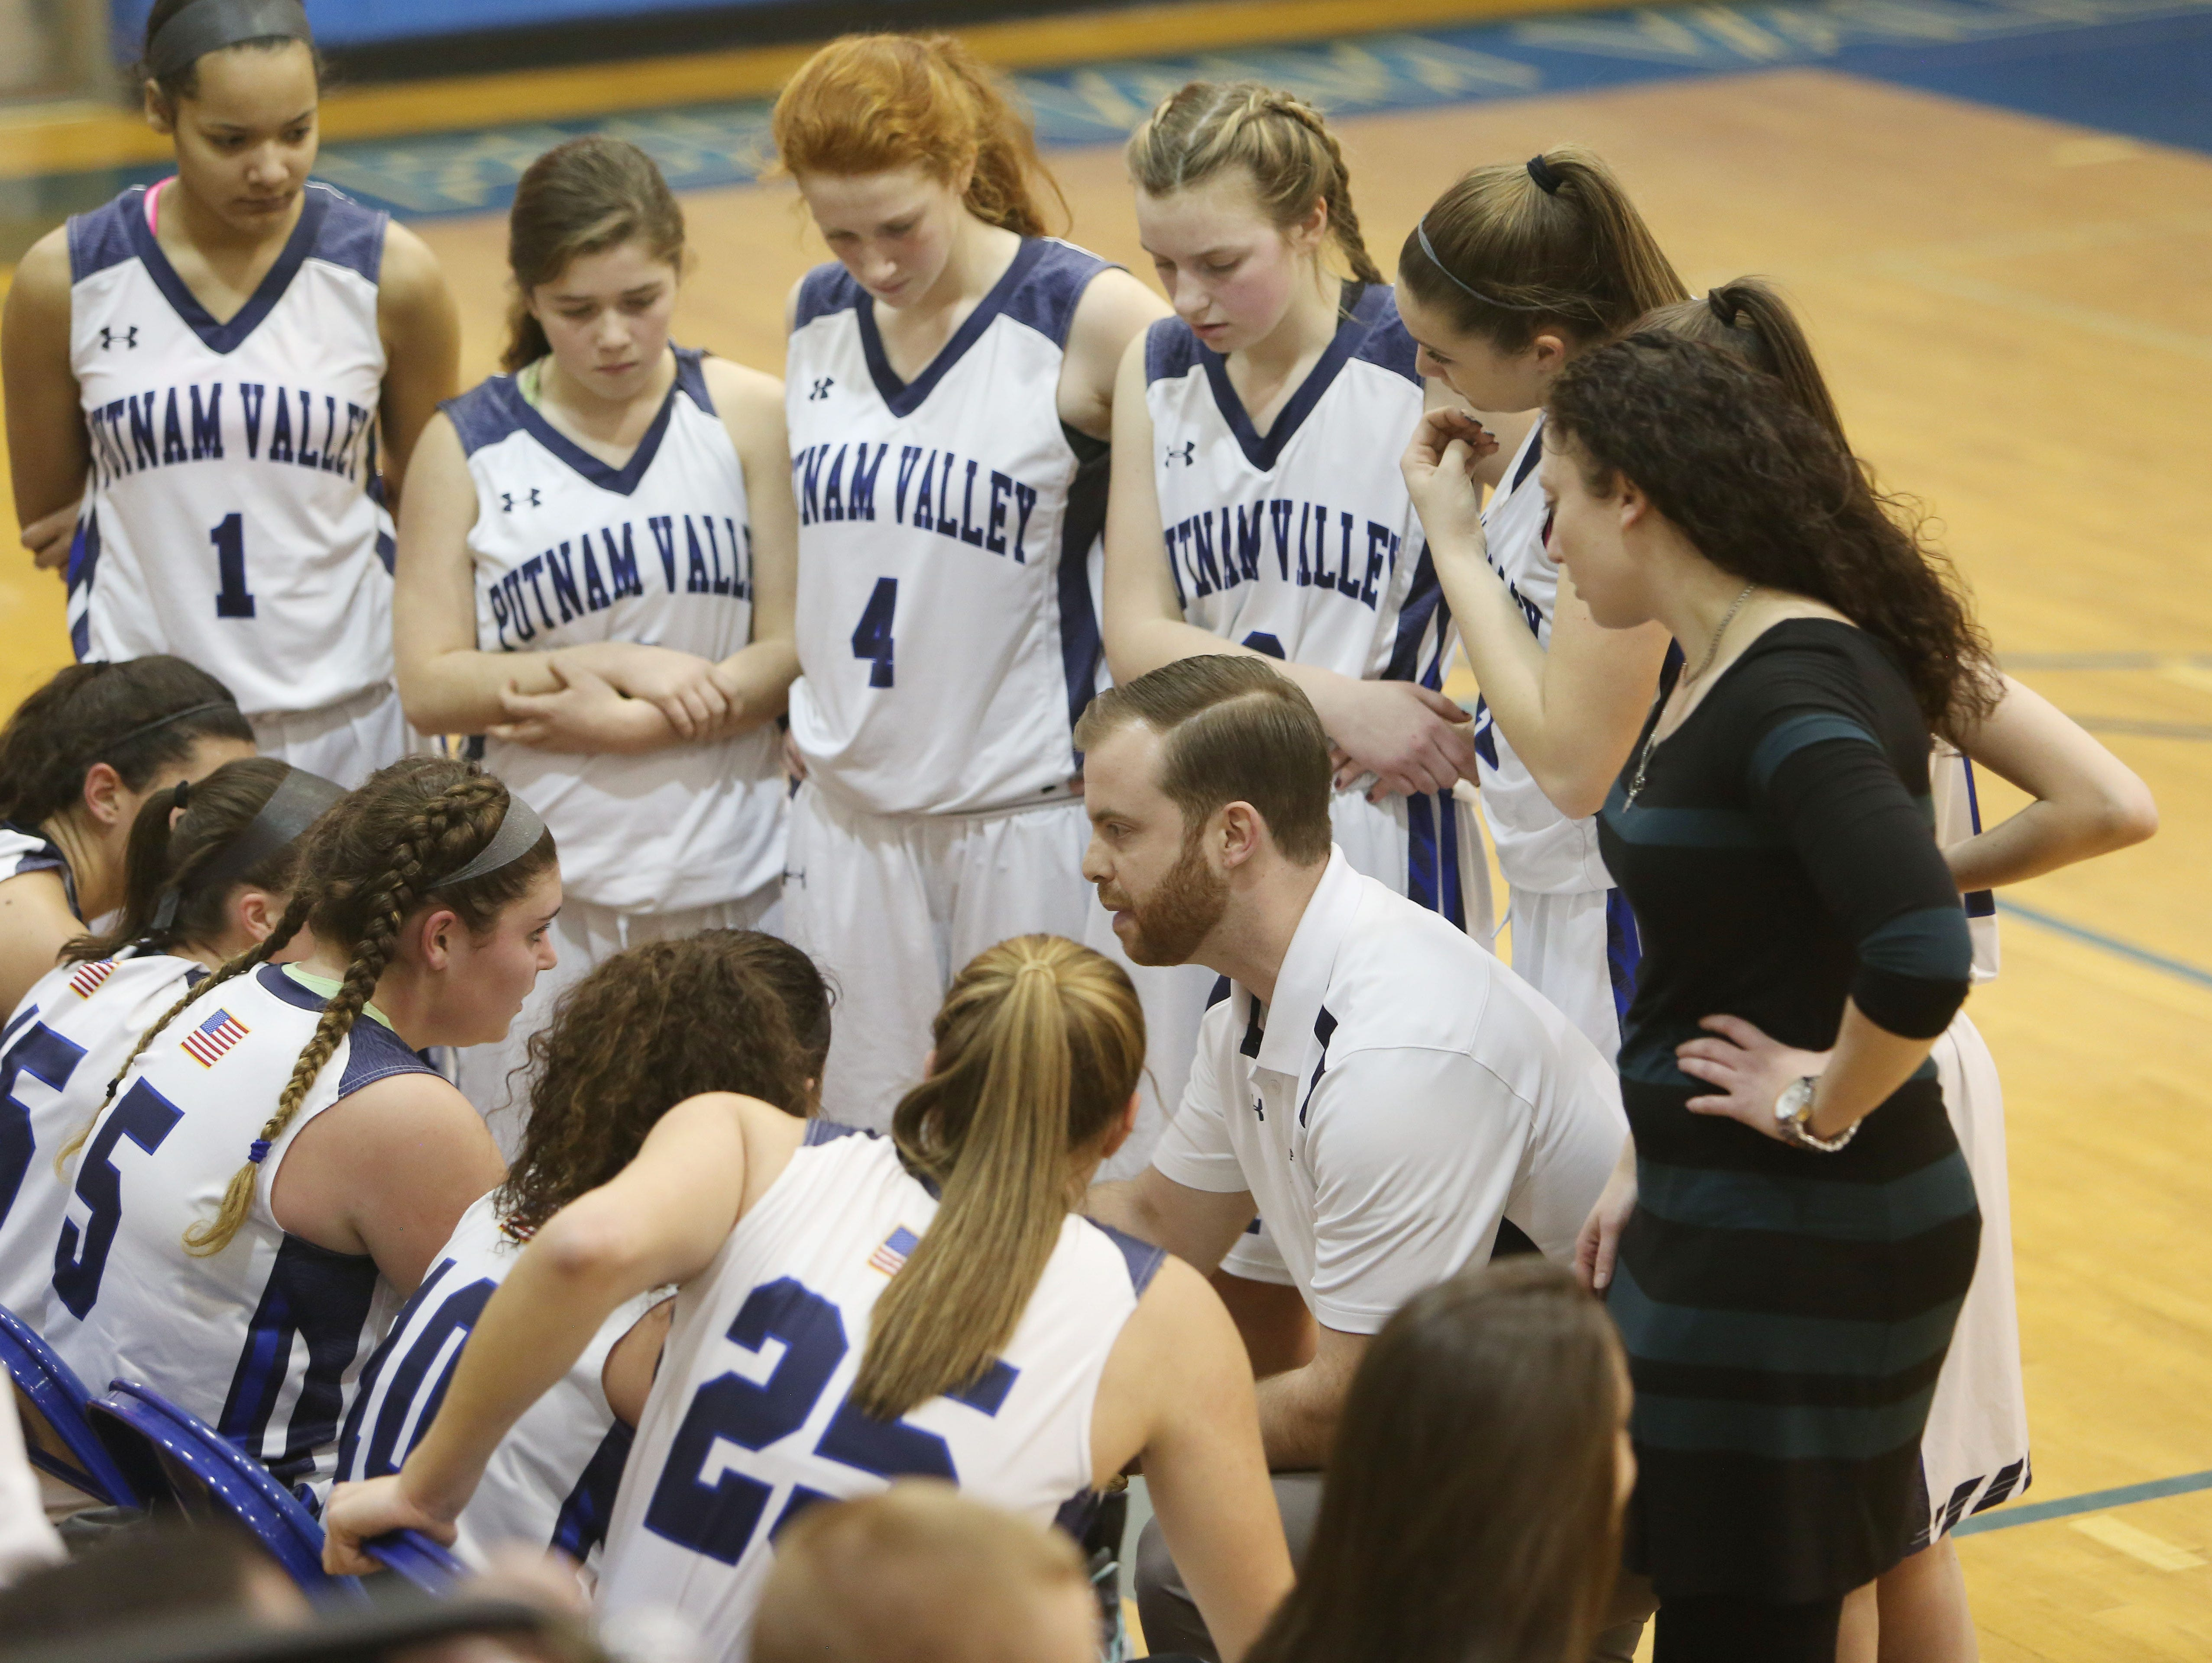 Putnam Valley defeated Pleasantville 43-33 in a girls playoff basketball game at Putnam Valley High School Feb. 17, 2016.